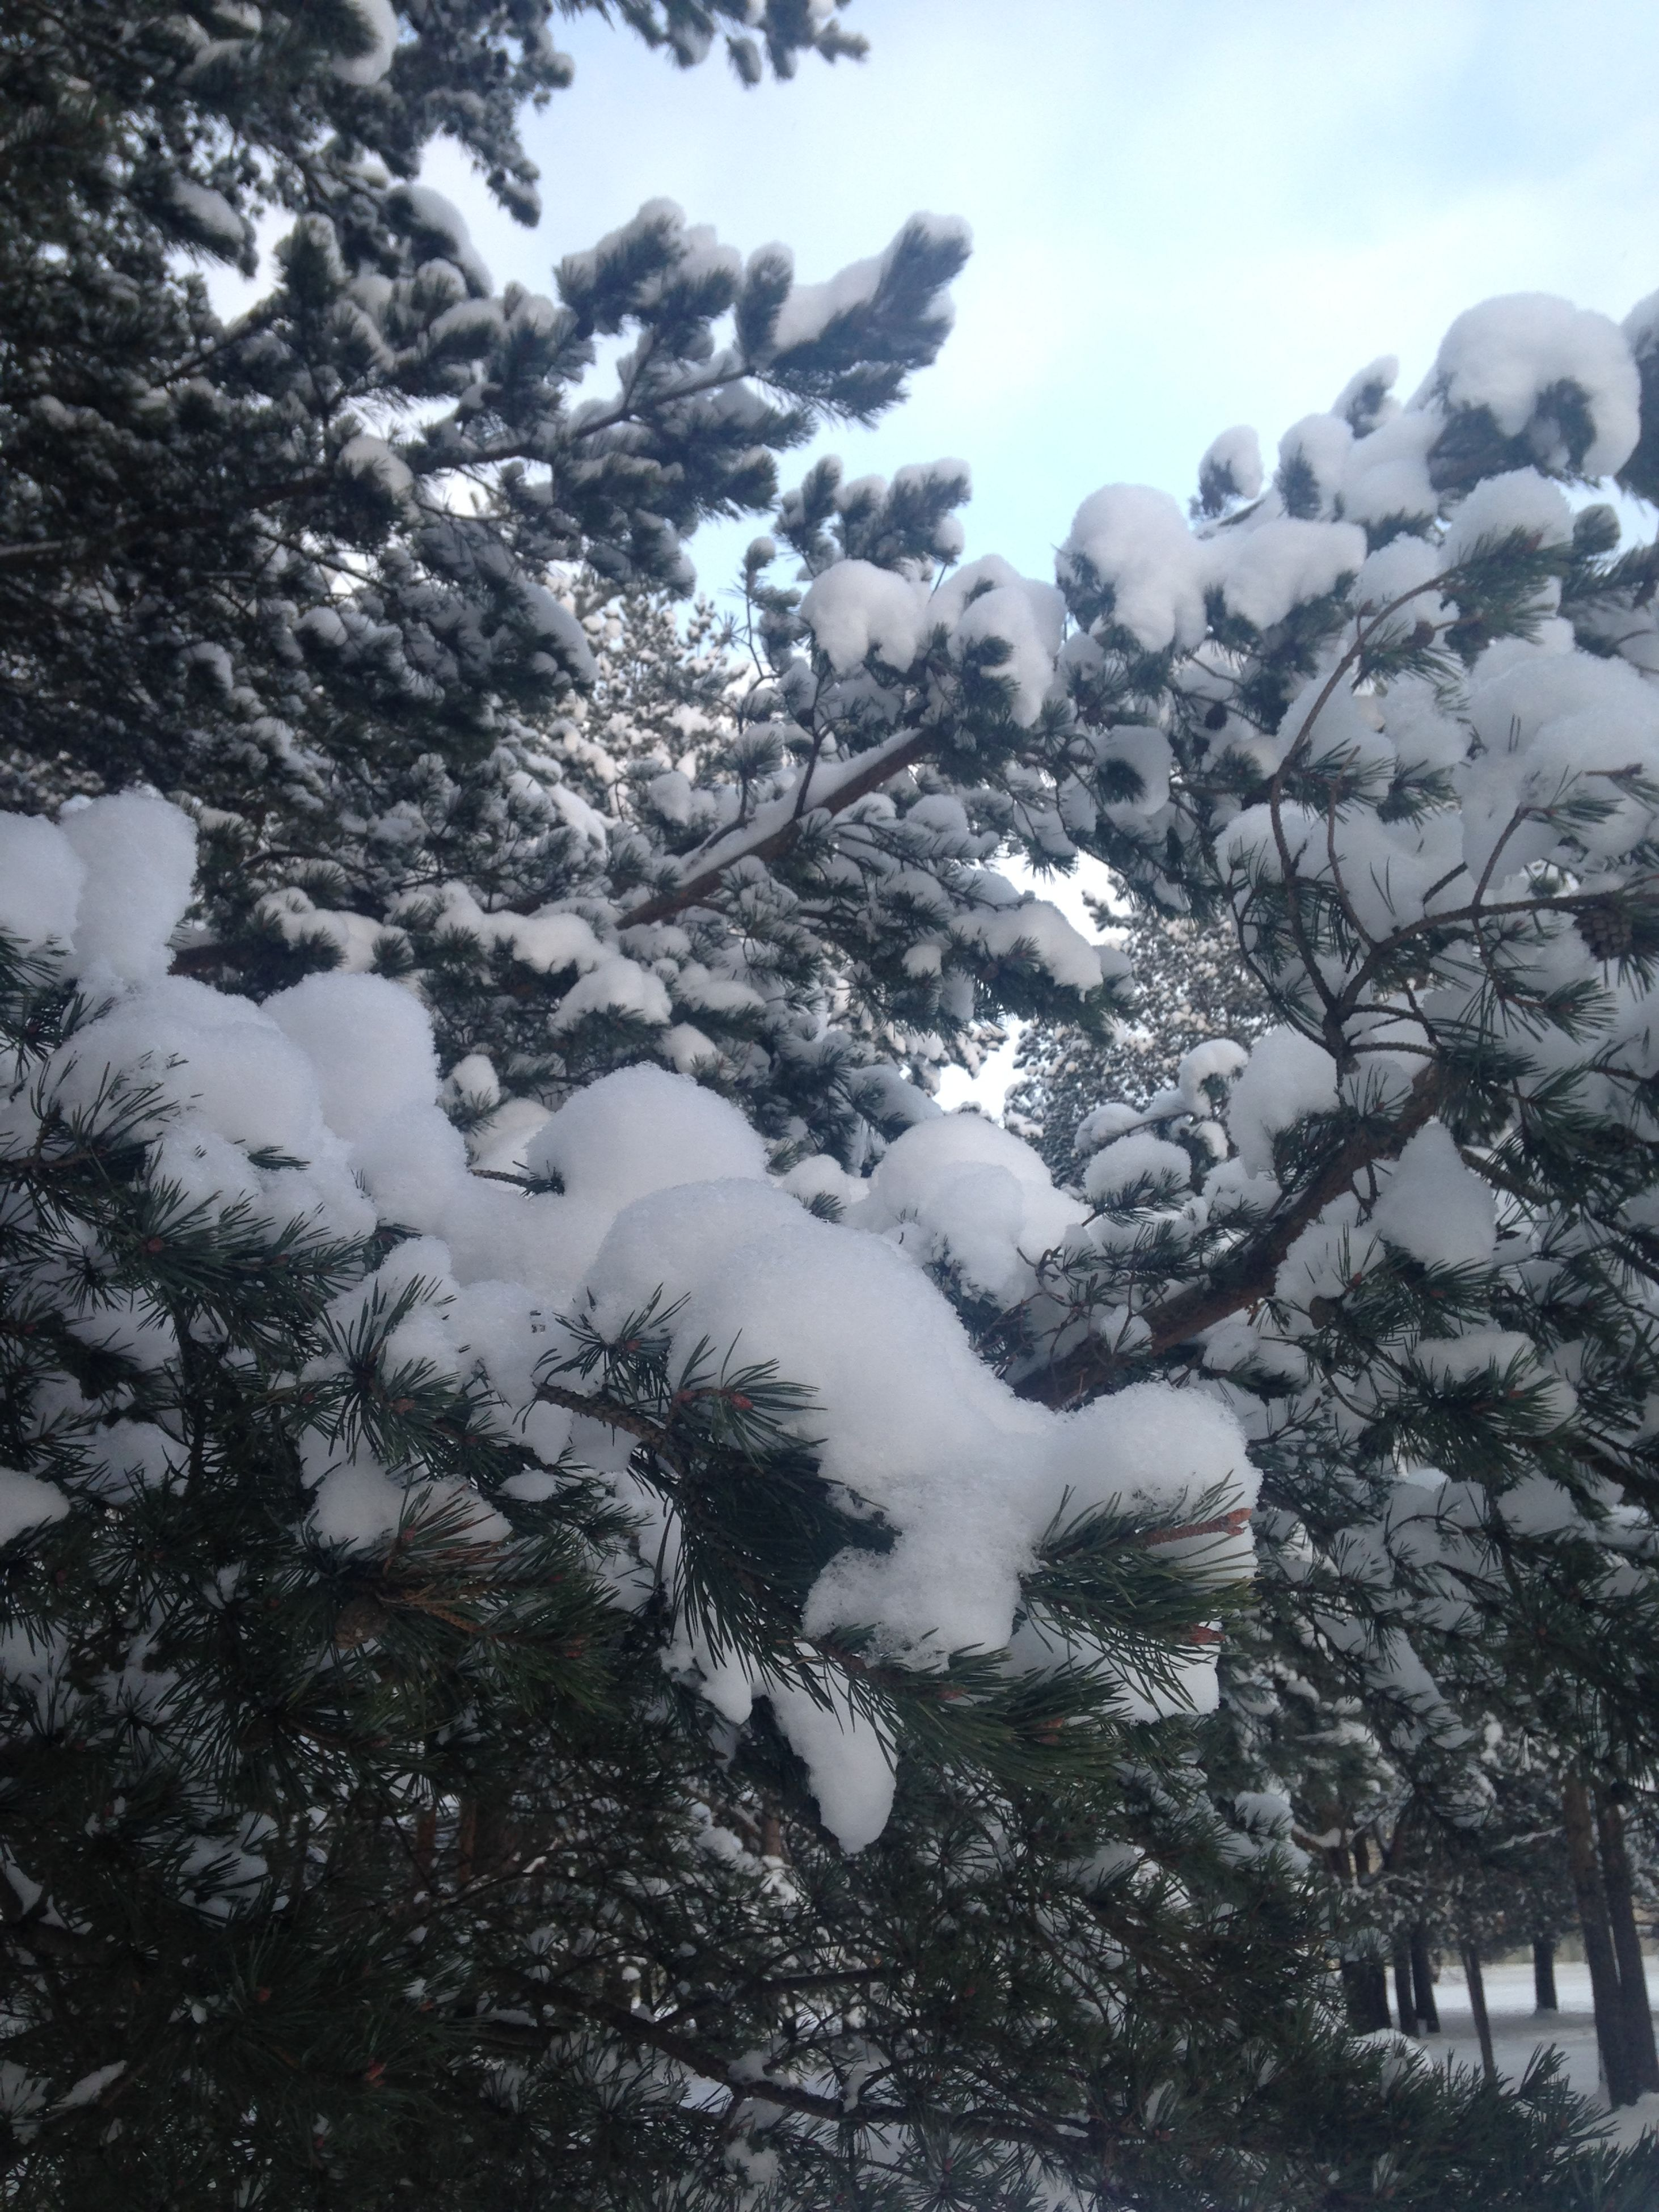 tree, low angle view, branch, growth, snow, white color, nature, beauty in nature, winter, season, cold temperature, sky, tranquility, day, outdoors, no people, weather, scenics, tranquil scene, white